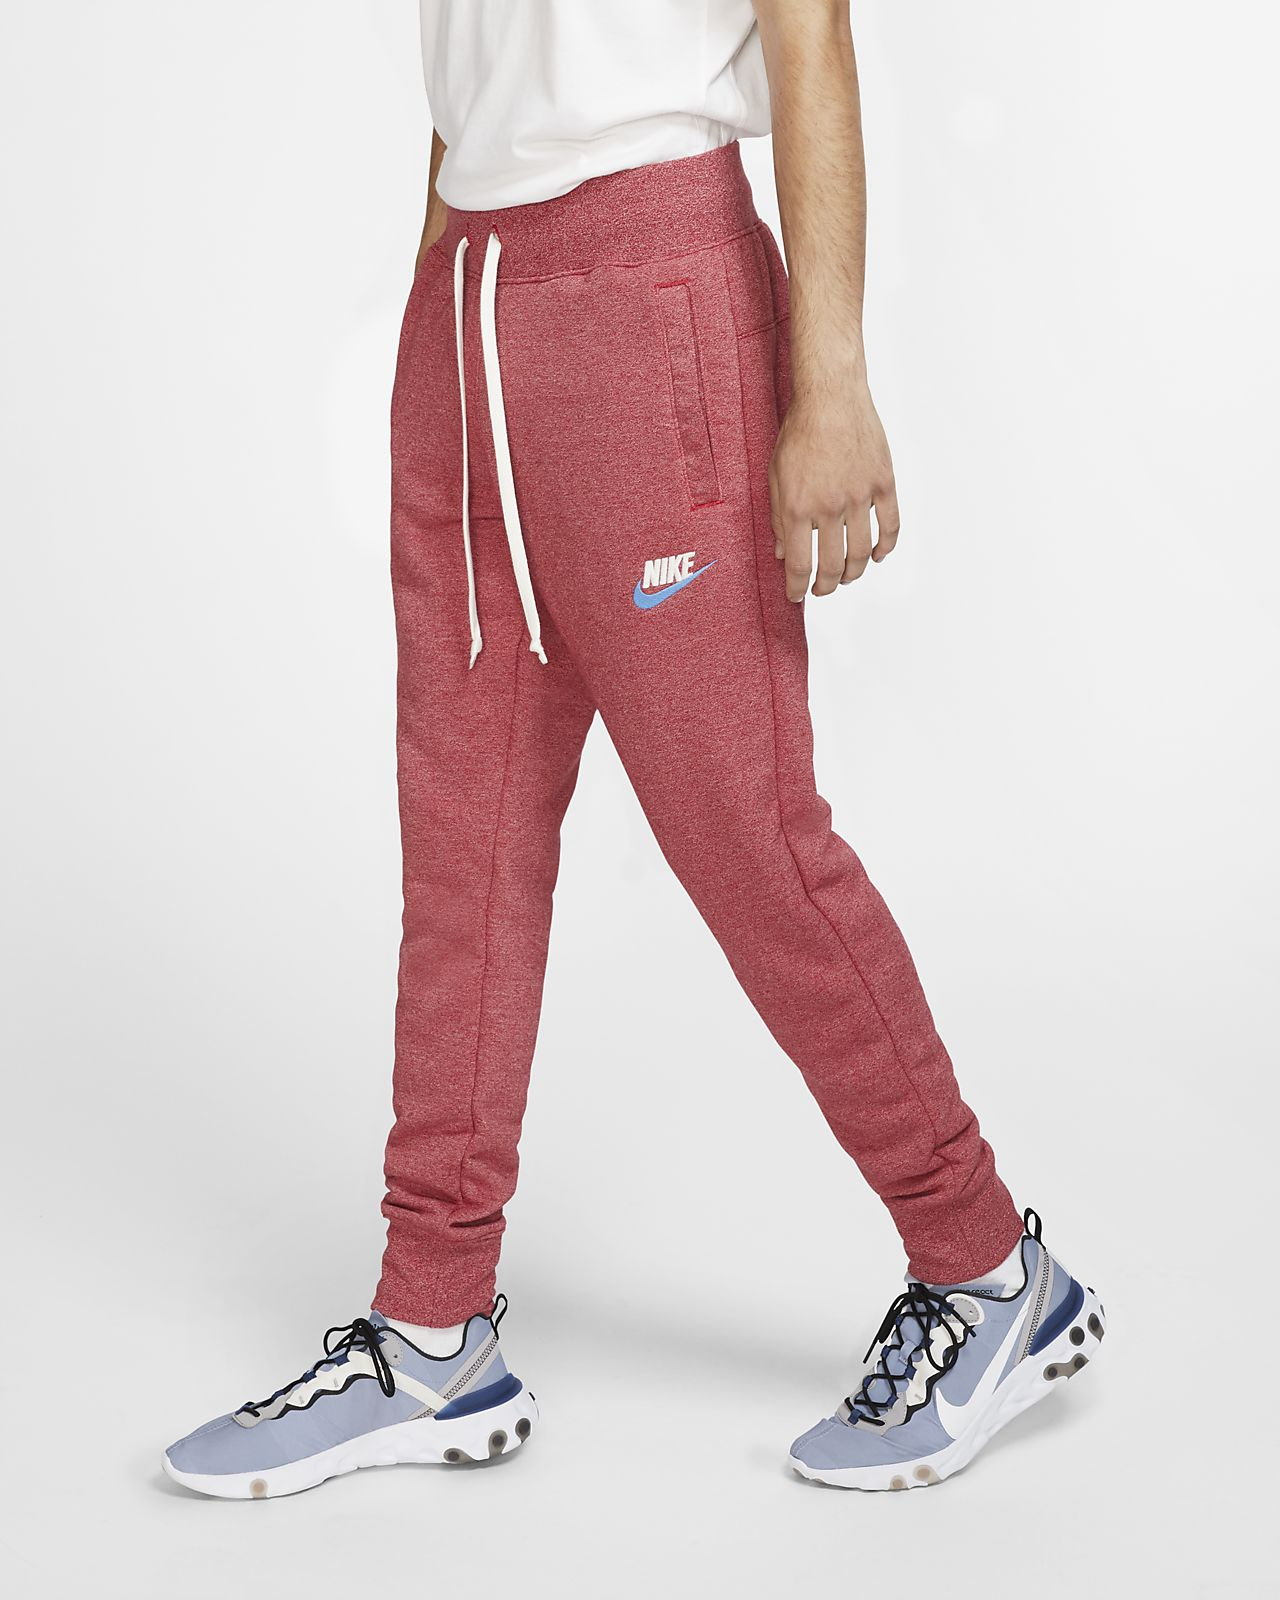 famous brand complete in specifications purchase authentic Nike Sportswear Heritage Men's Joggers